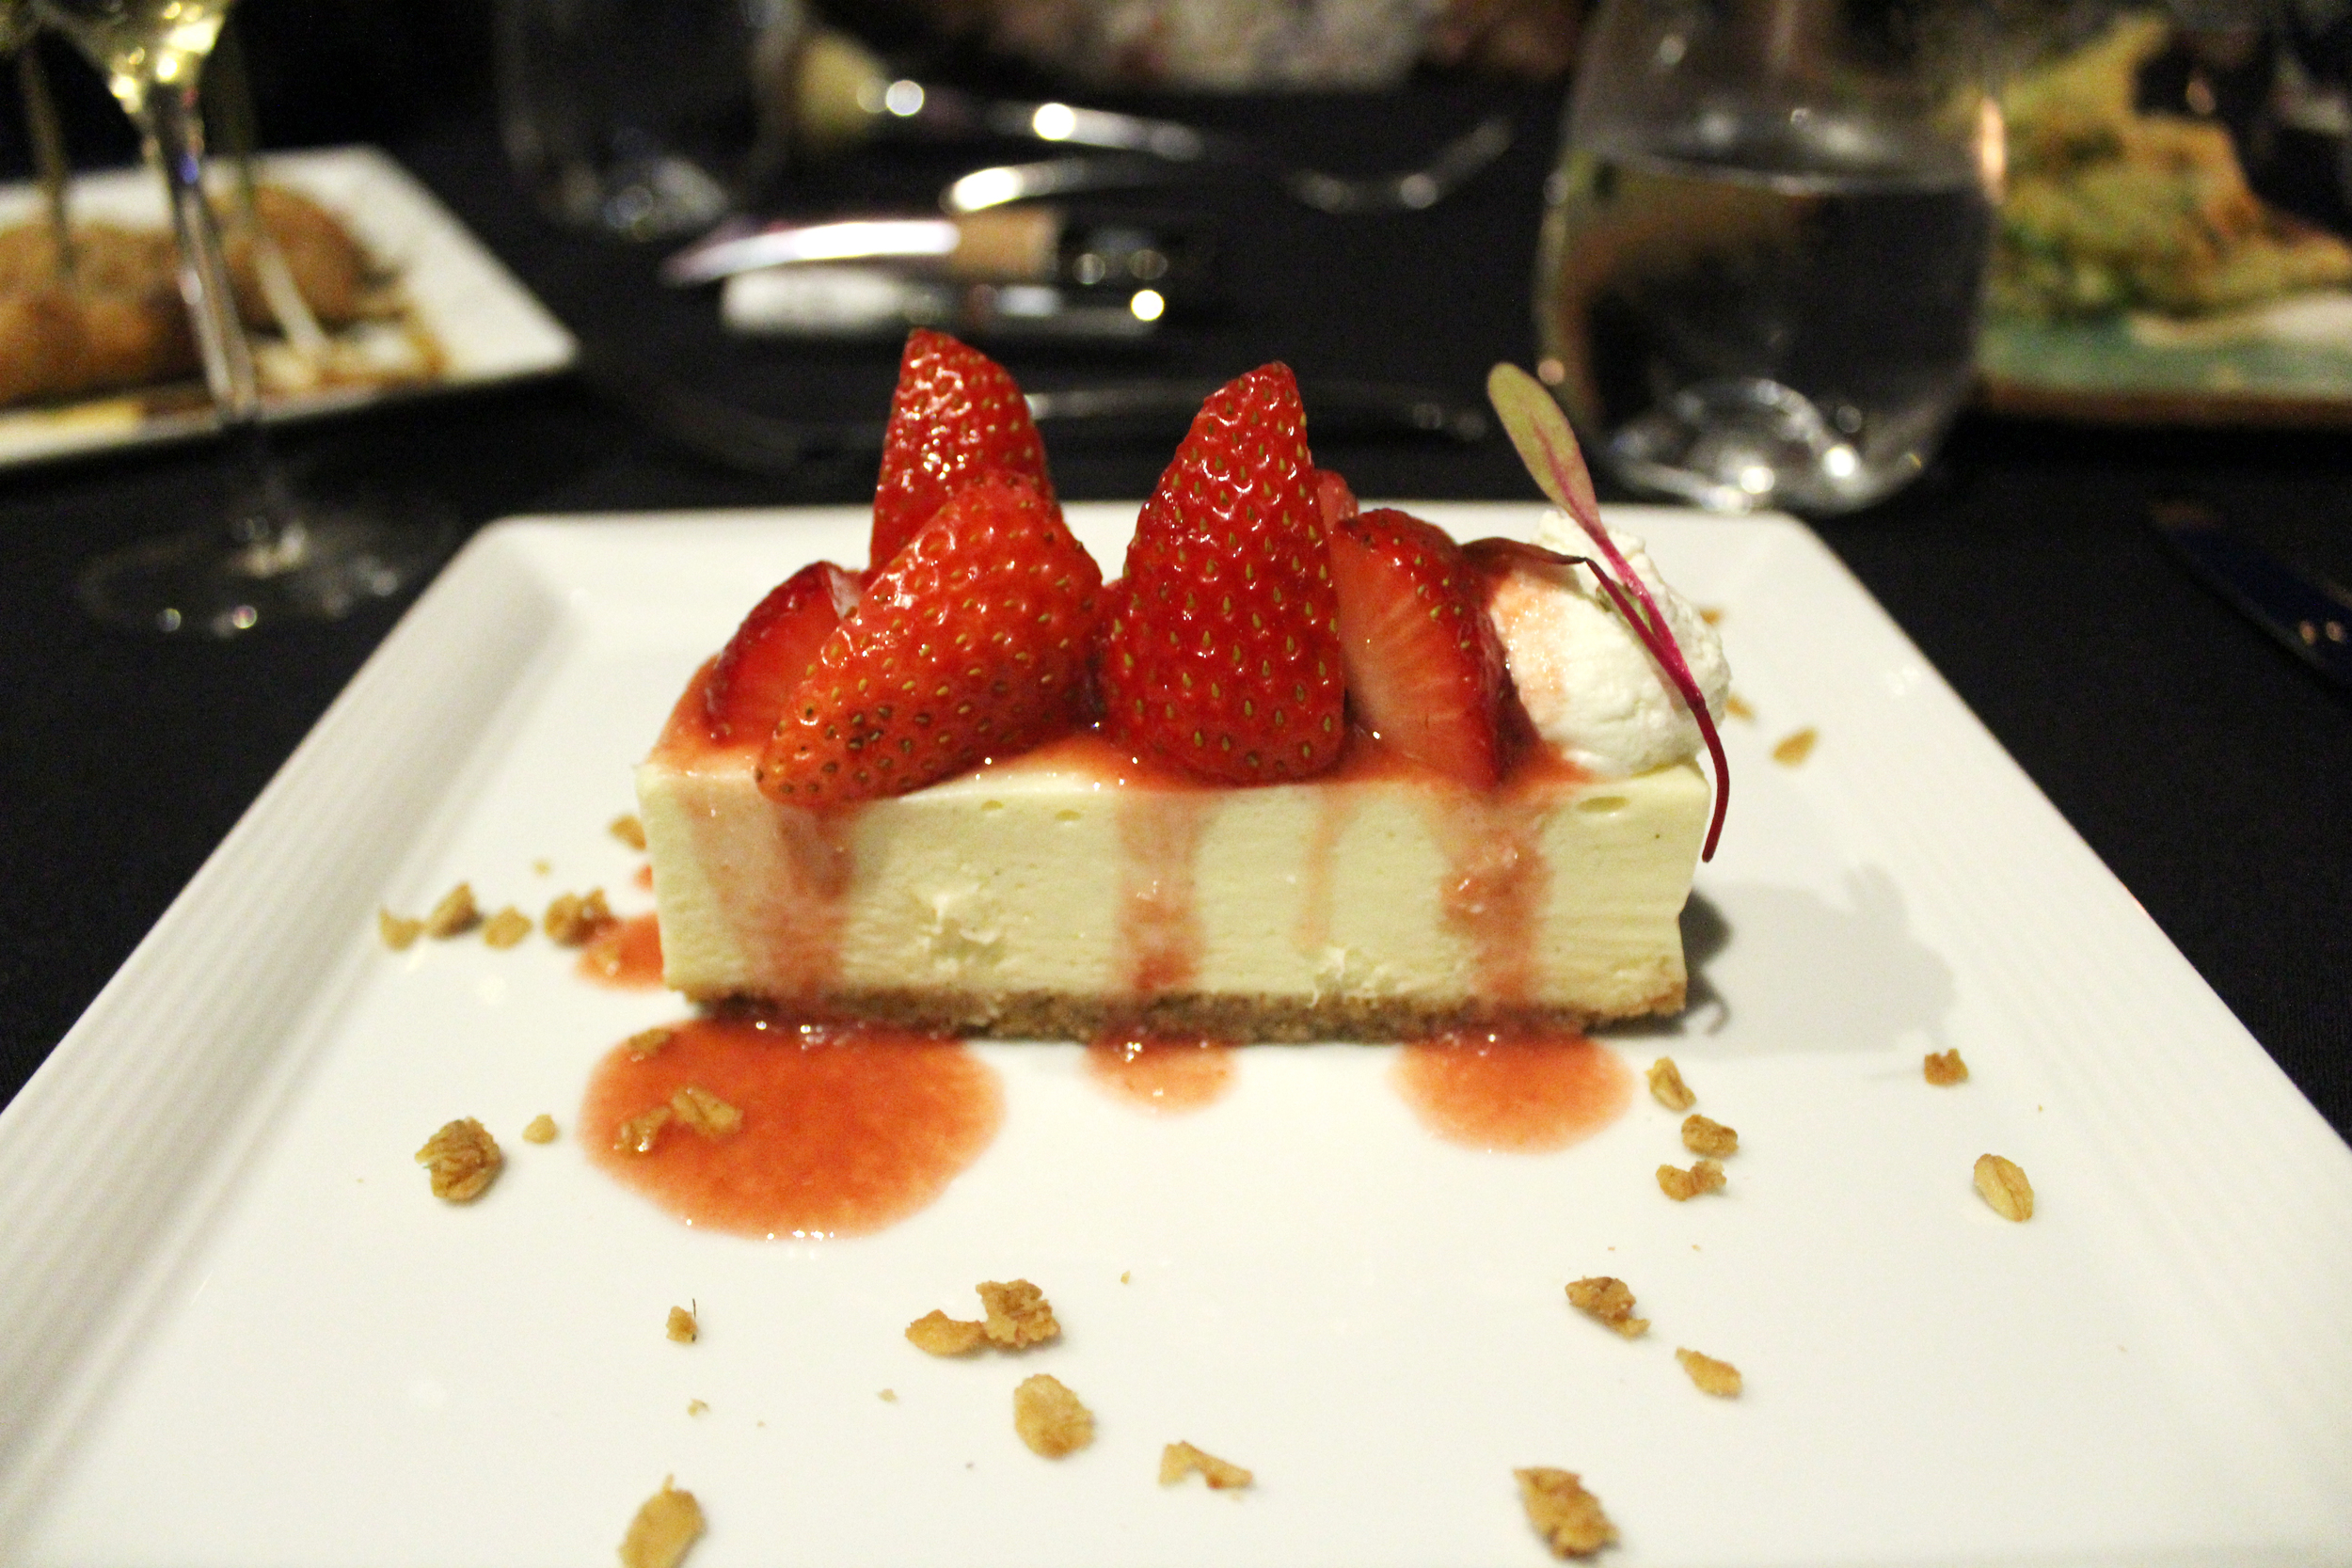 You can never go wrong with strawberry cheesecake.